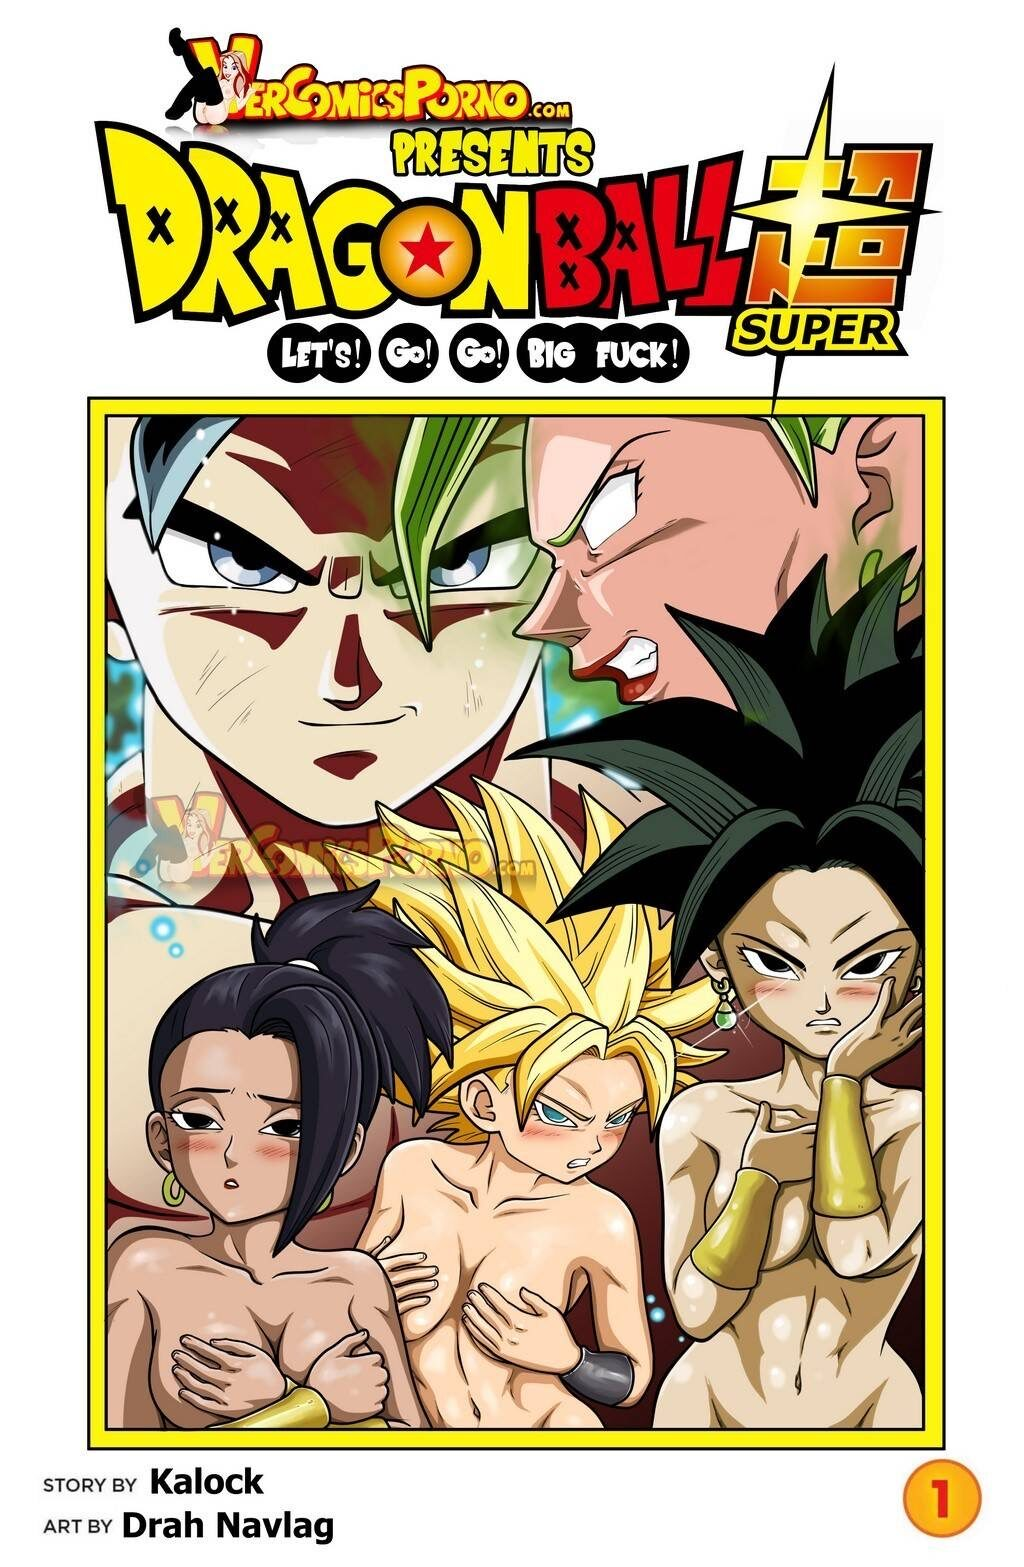 Dragon-Ball-Super-caulifia-and-Kale-Kefla-super-Saiyan-God-Goku-Bisexual-threesome-Virgin-Comic-Porn-Hentai-Manga-masturbation-thick-Thicc-defloration-muscle-cum-inside-impregnate-Lets-Go-Go-Big-Fuck